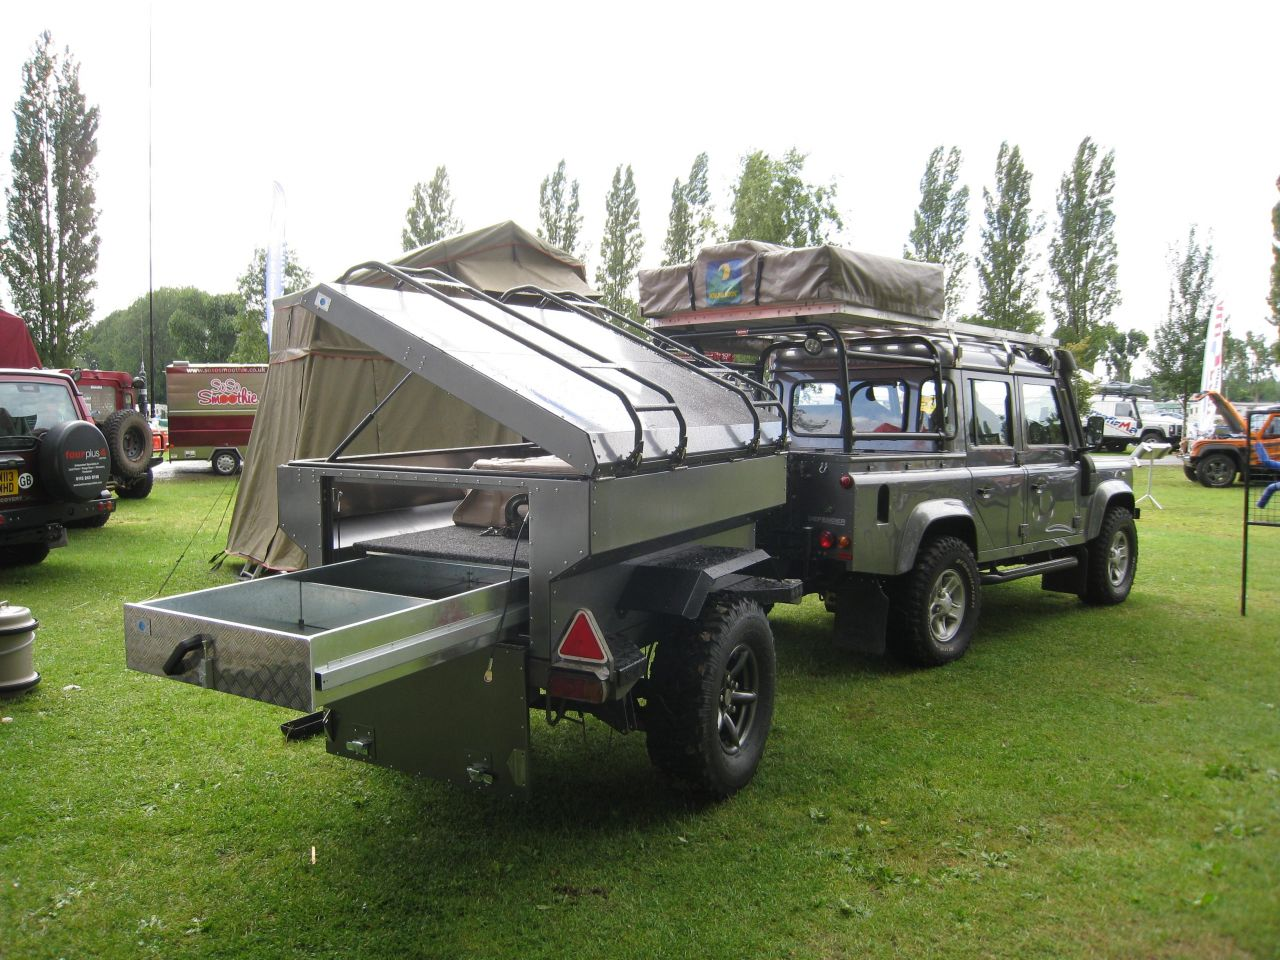 New I Need One Of These Sportsmobile Custom Camper Vans  Cover It With Fish Decals And Put A  Maybe By Nene Valley Landrover Specialists In The UK Landrover Defender With A Tent On Top! This Might Be A Nene Company Setup As They